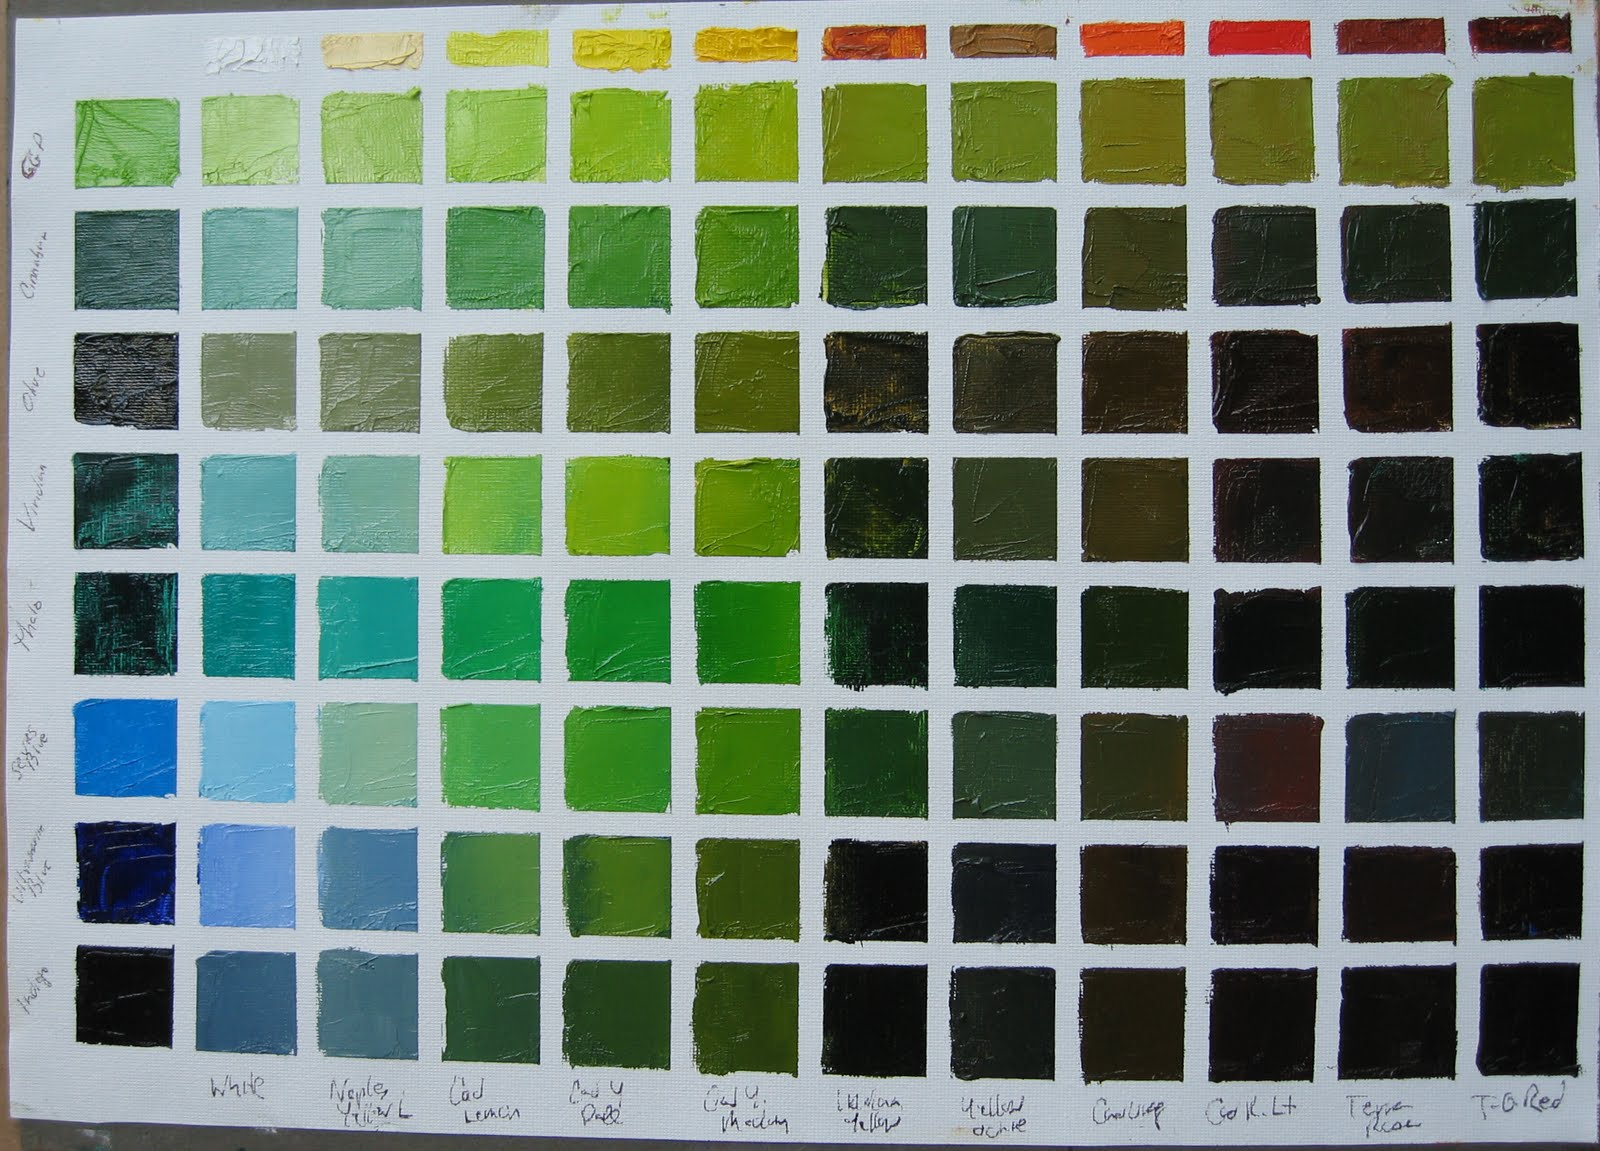 Pat fiorello art elevates life oil painting color charts how to oil painting color charts how to mix green geenschuldenfo Image collections